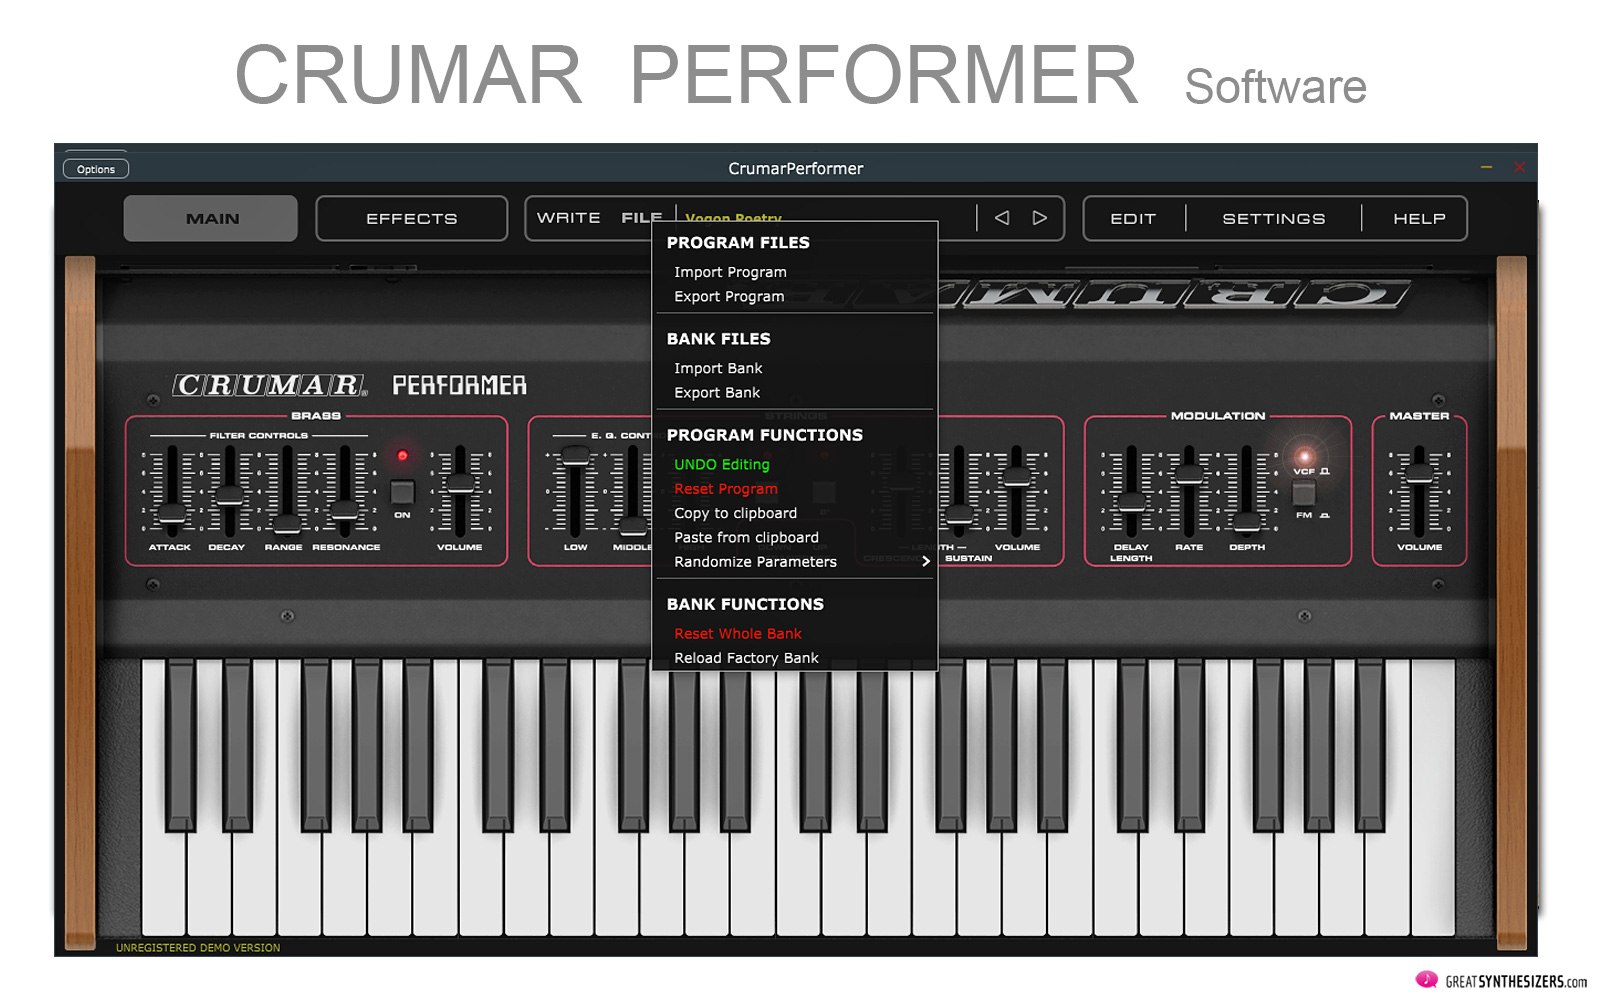 Crumar Performer Software